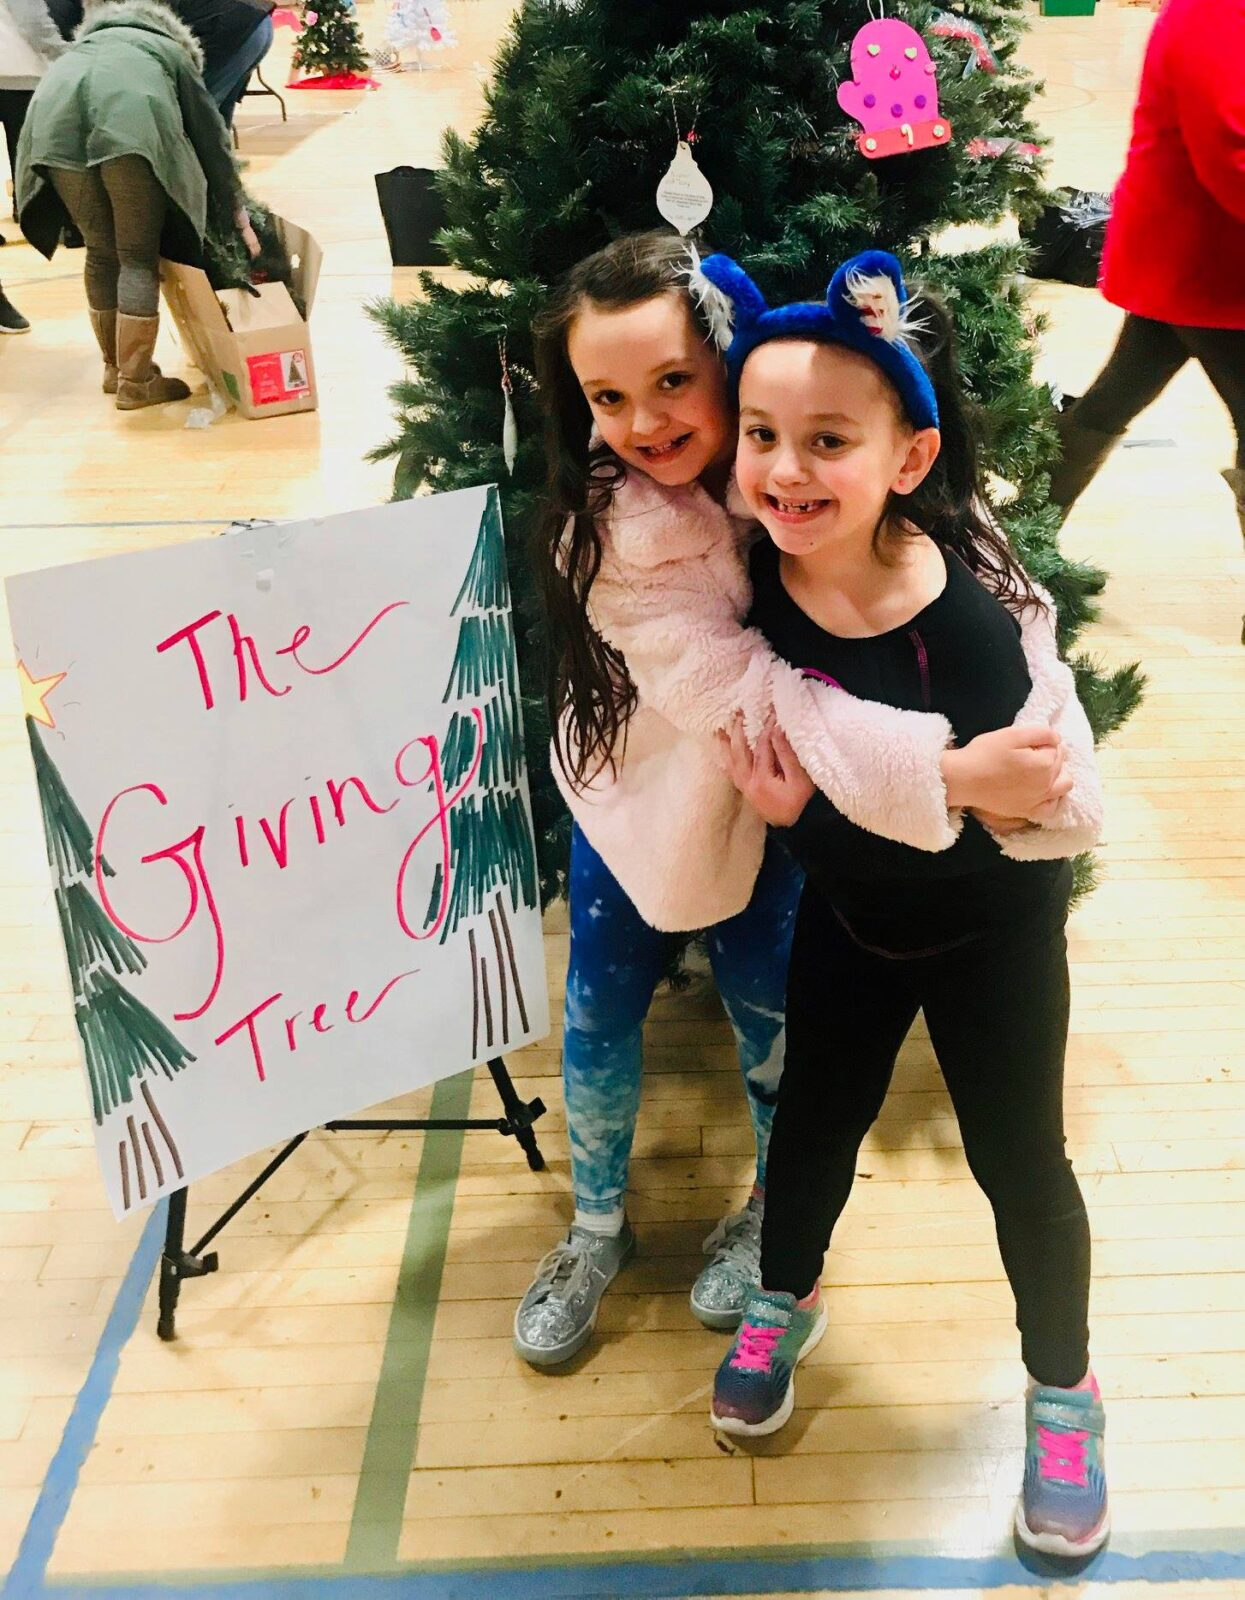 The giving tree girls smiling